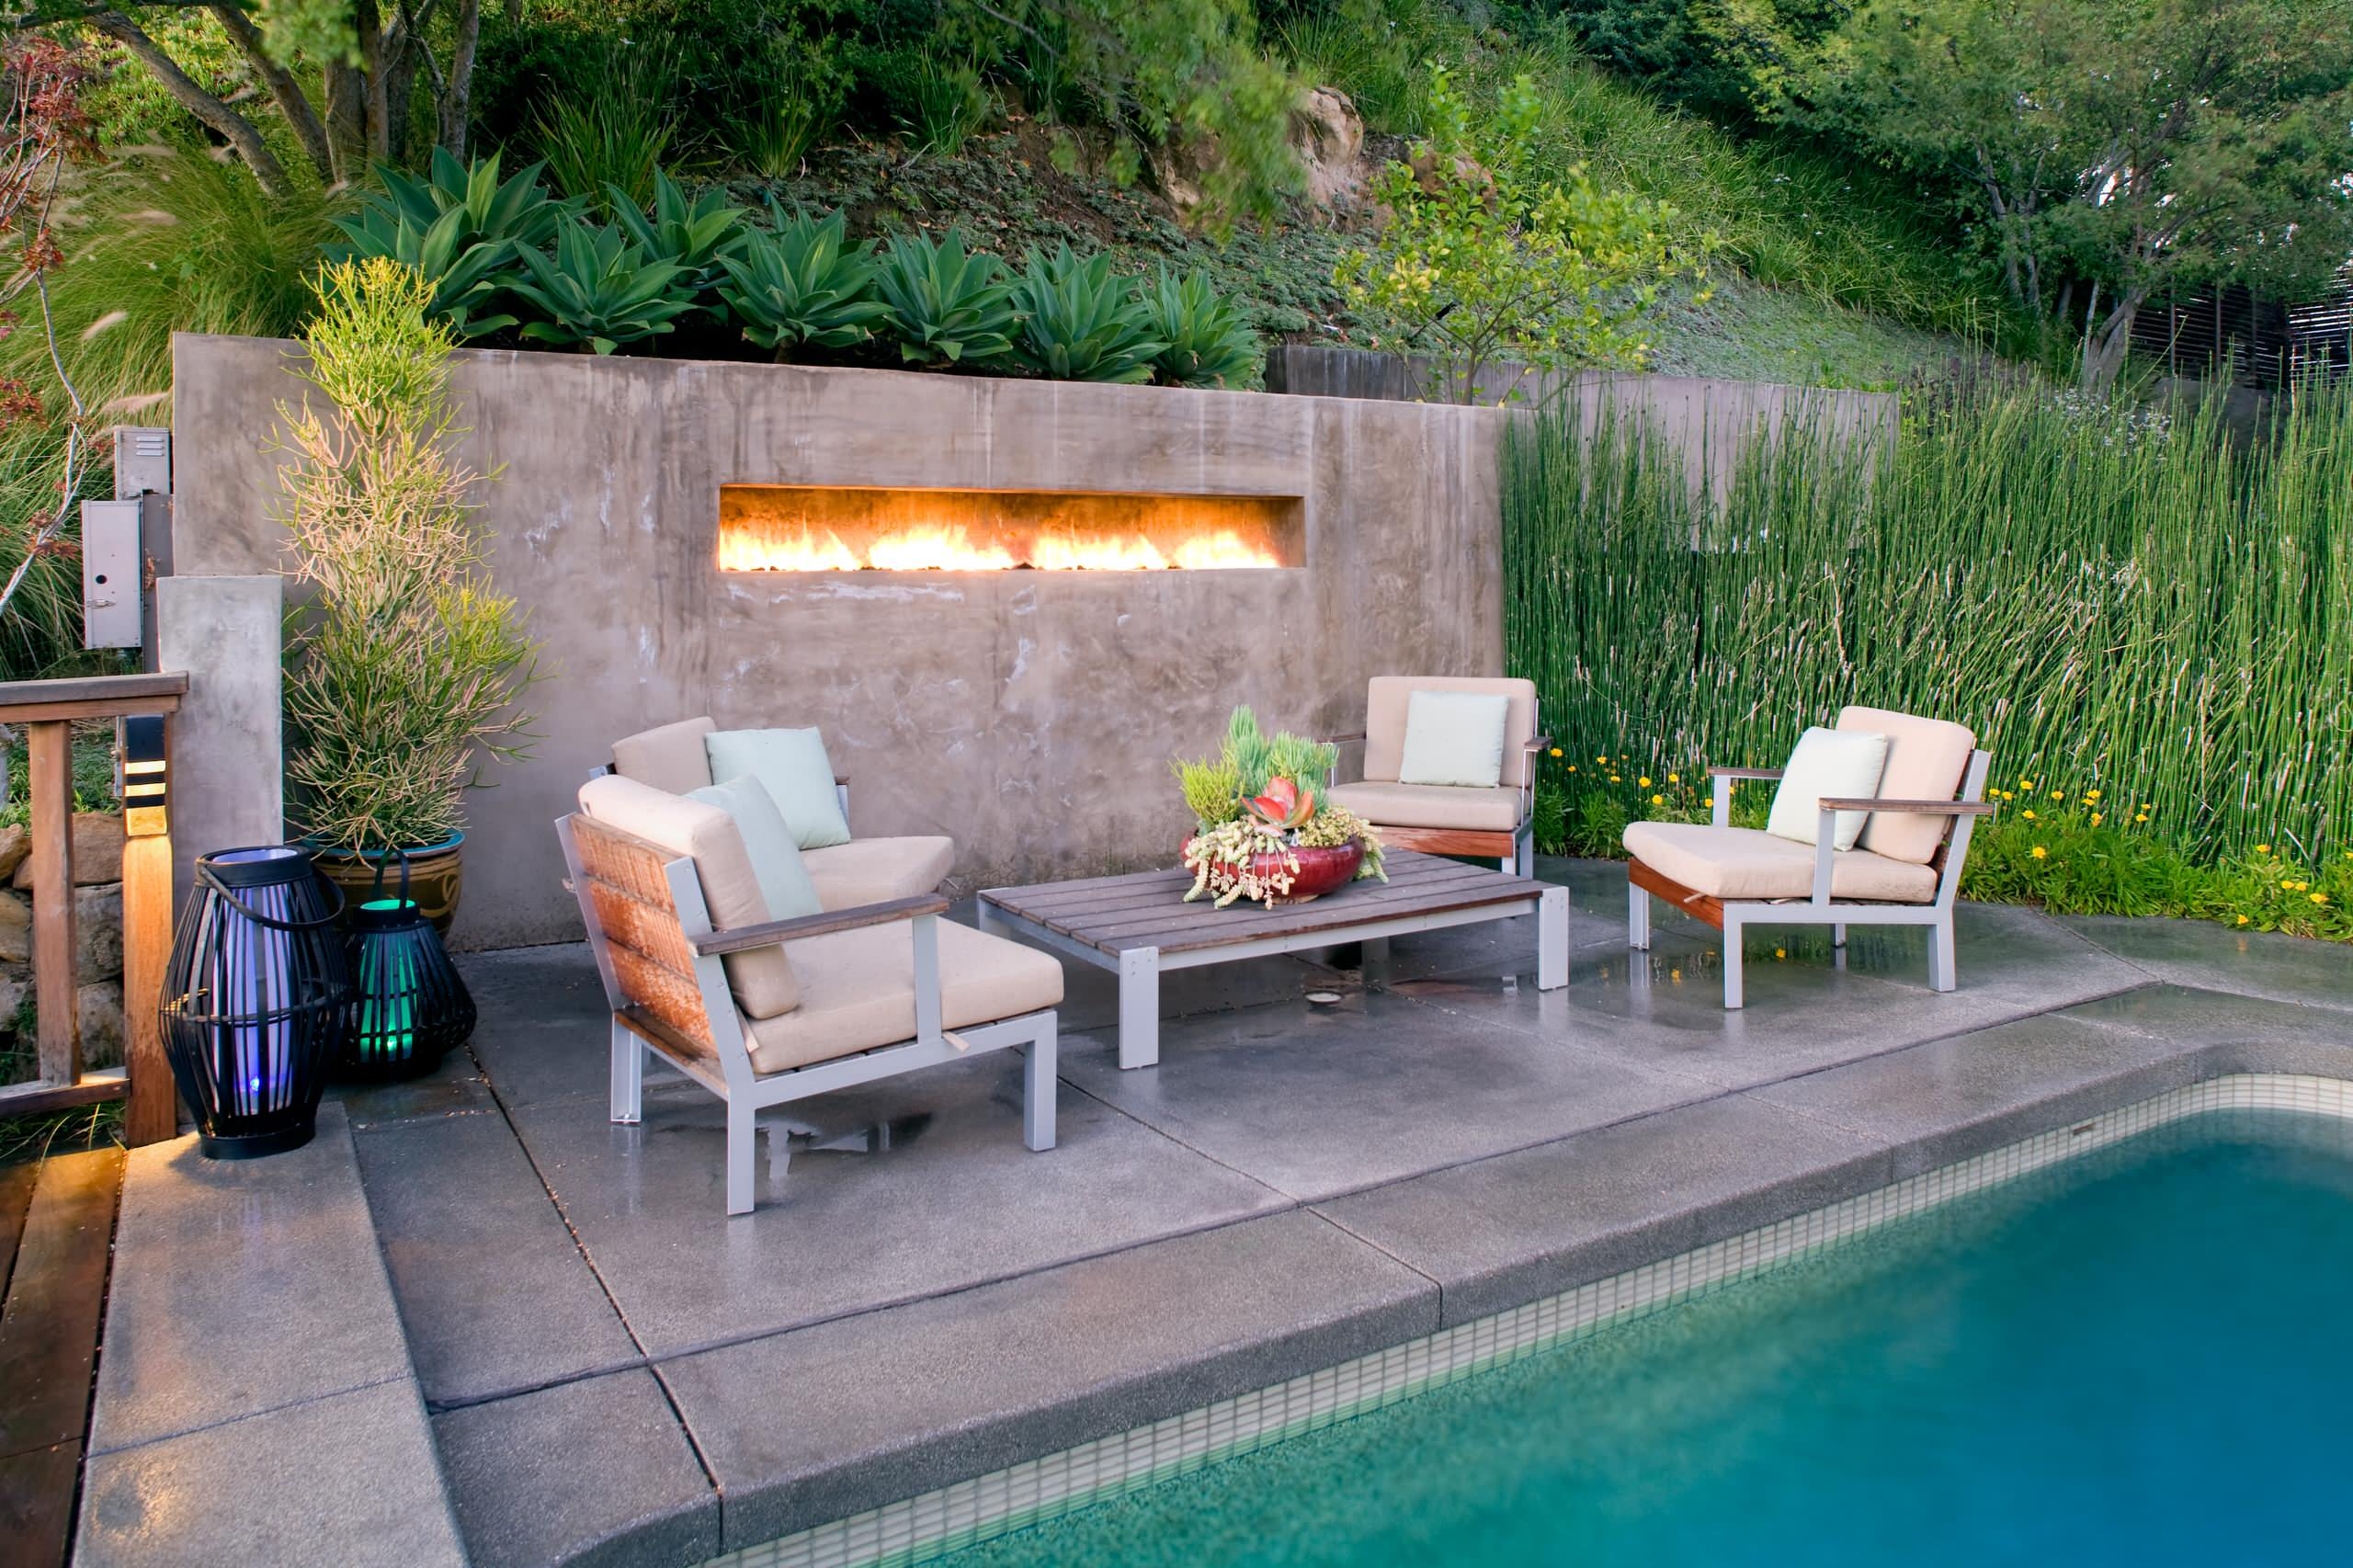 50 Best Patio Ideas For Design Inspiration For 2019 with Backyard Patio Ideas Pictures